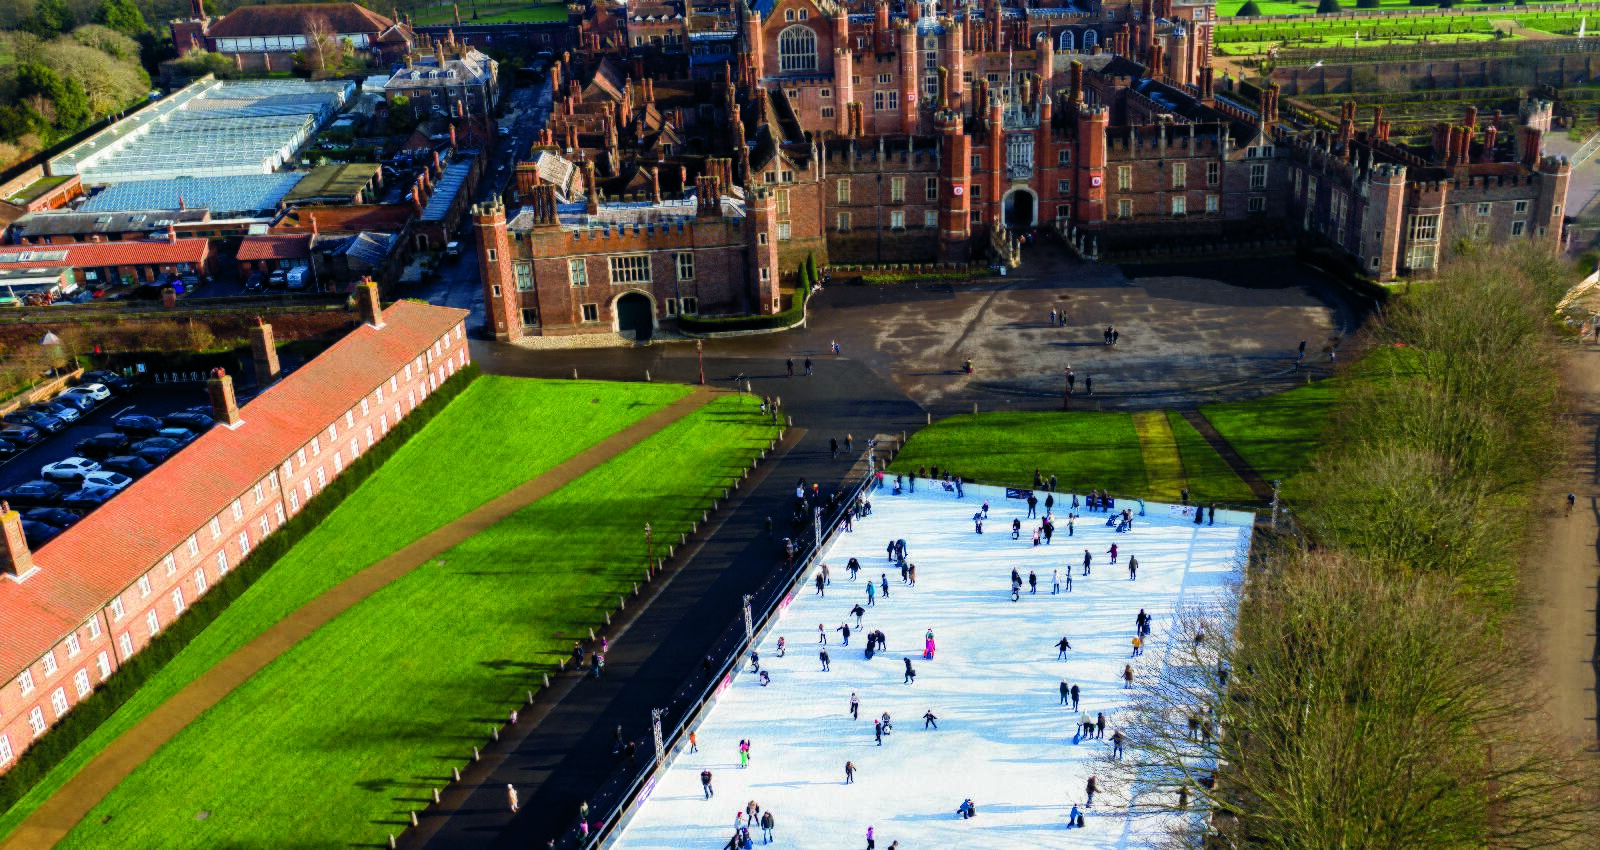 Hampton Court Palace Ice Rink in association with Historic Royal Palaces